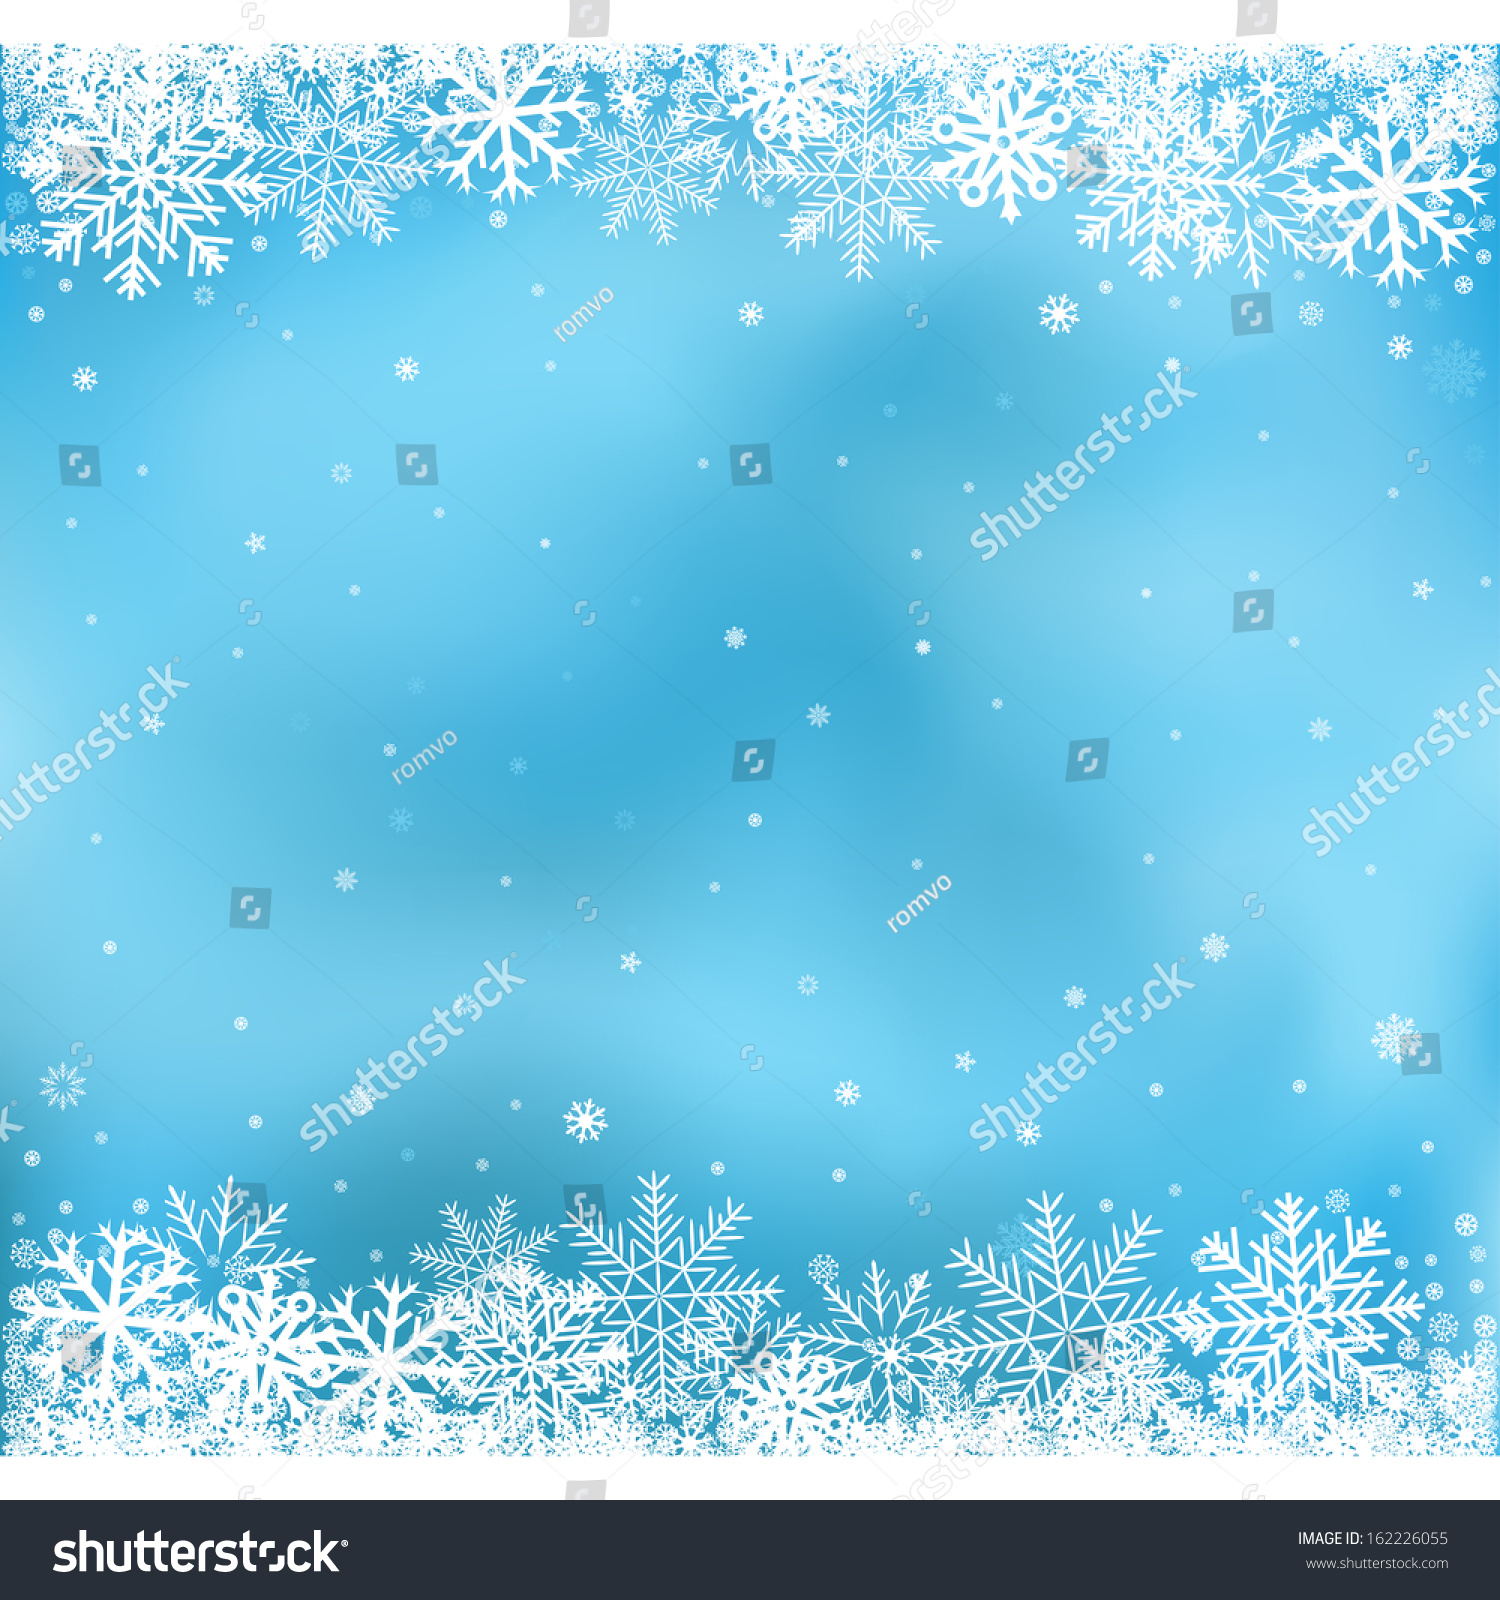 The White Snow On The Blue Mesh Background Winter And